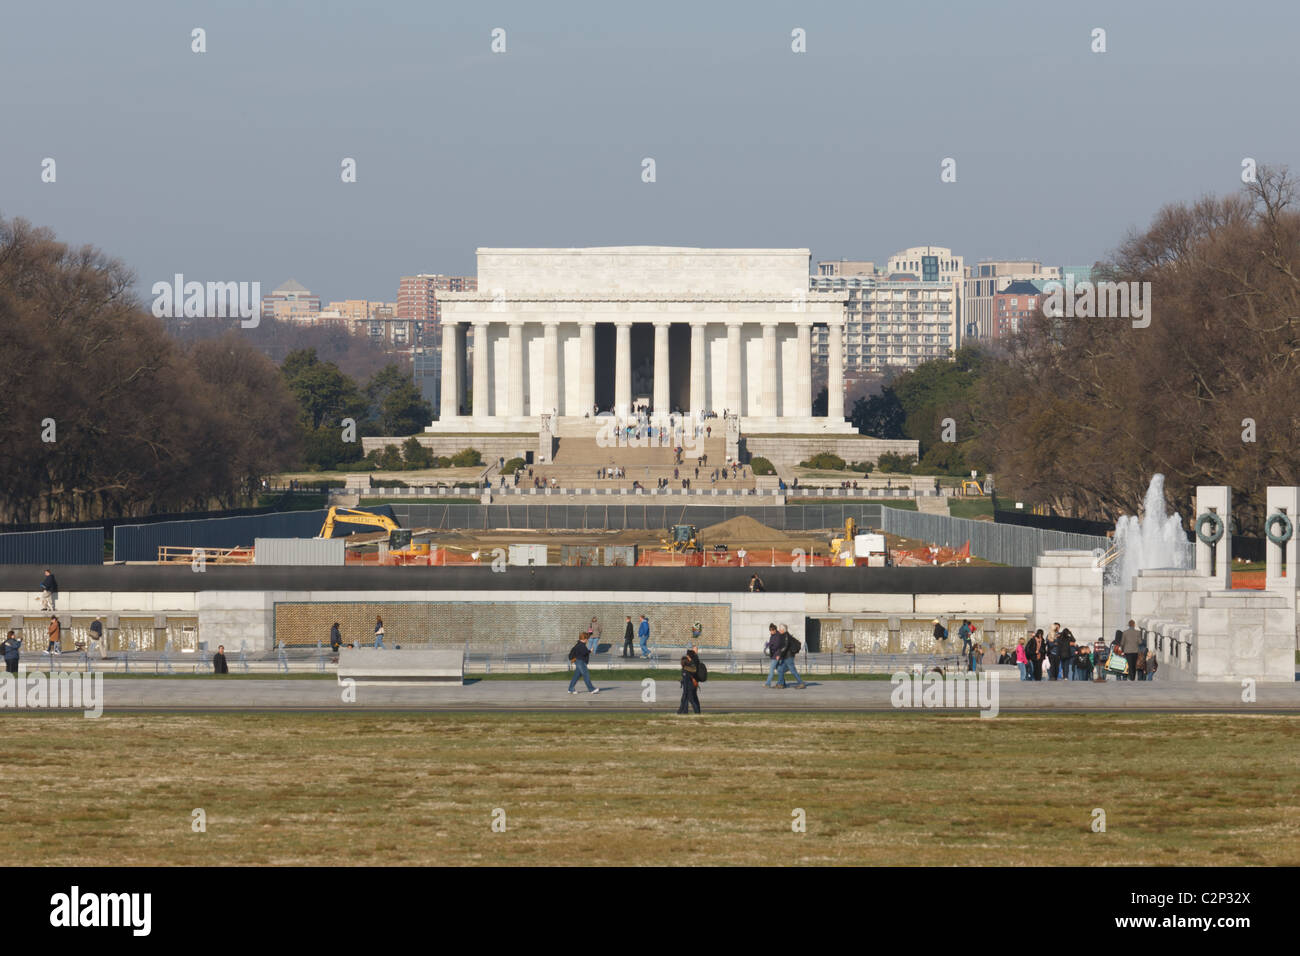 The Lincoln Memorial showing the in-progress renovation of the Reflecting Pool in Washington, DC. - Stock Image